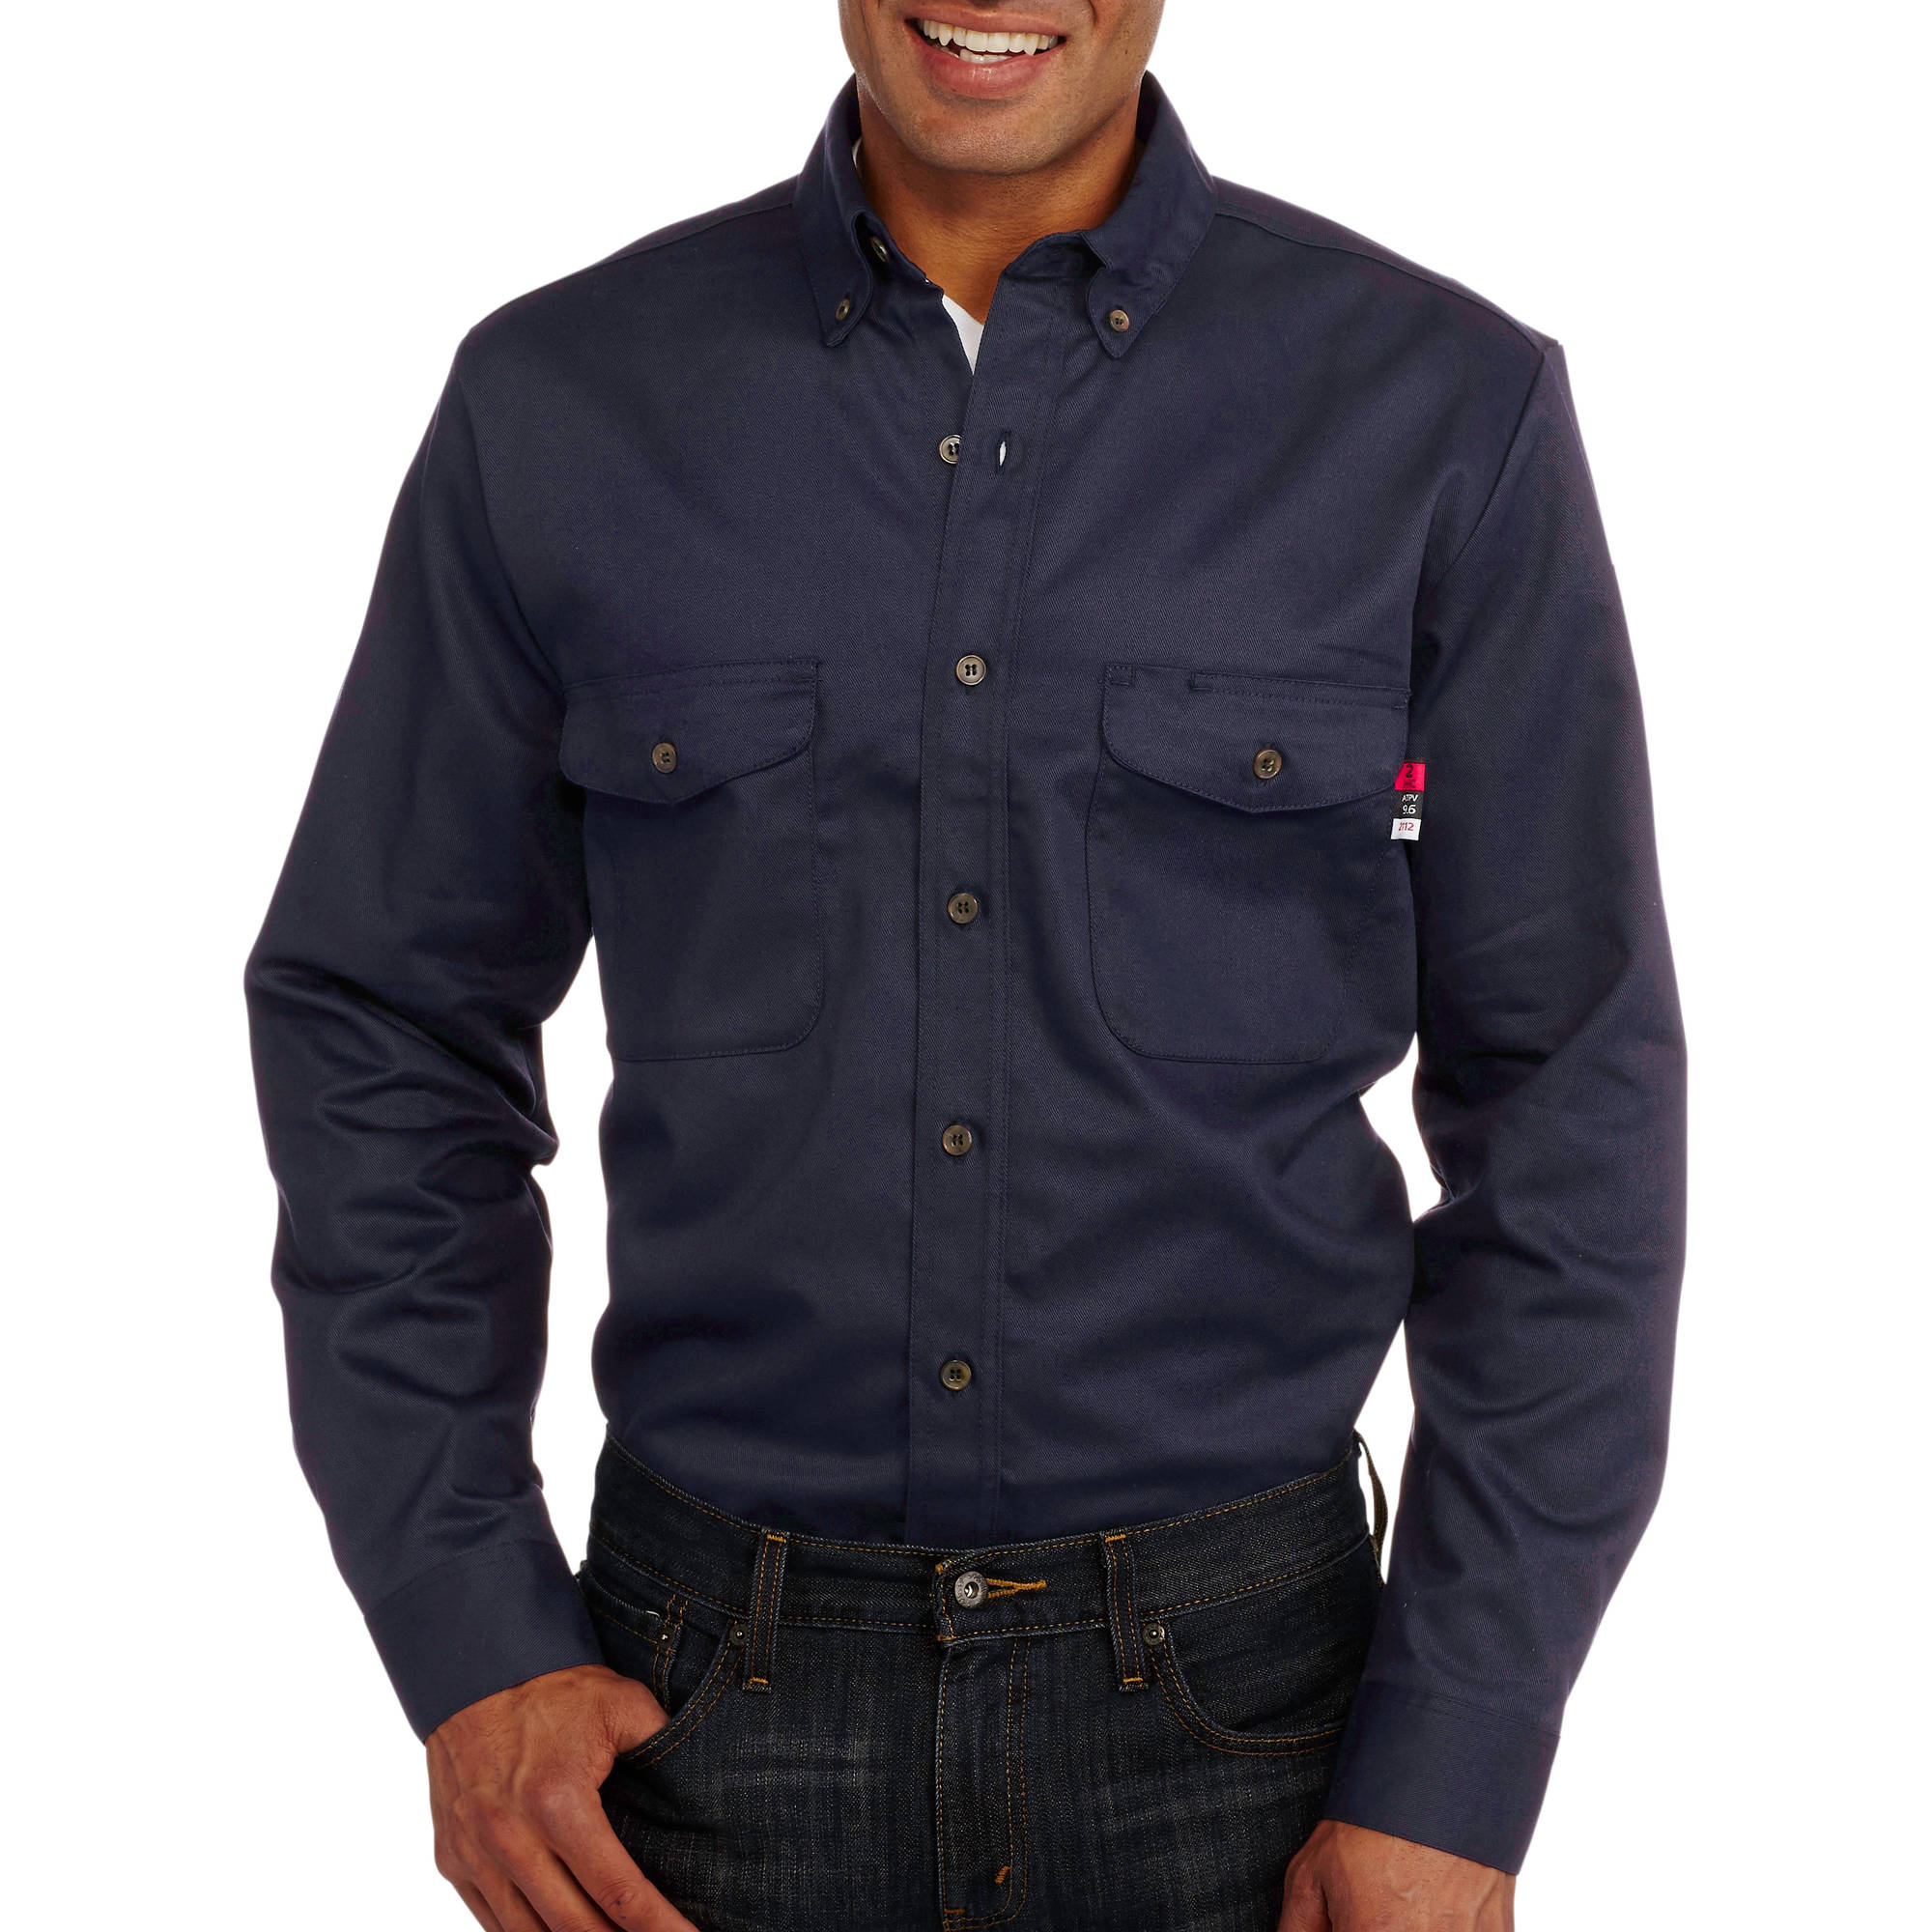 Walls FR Big Men's Button-Down Work Shirt